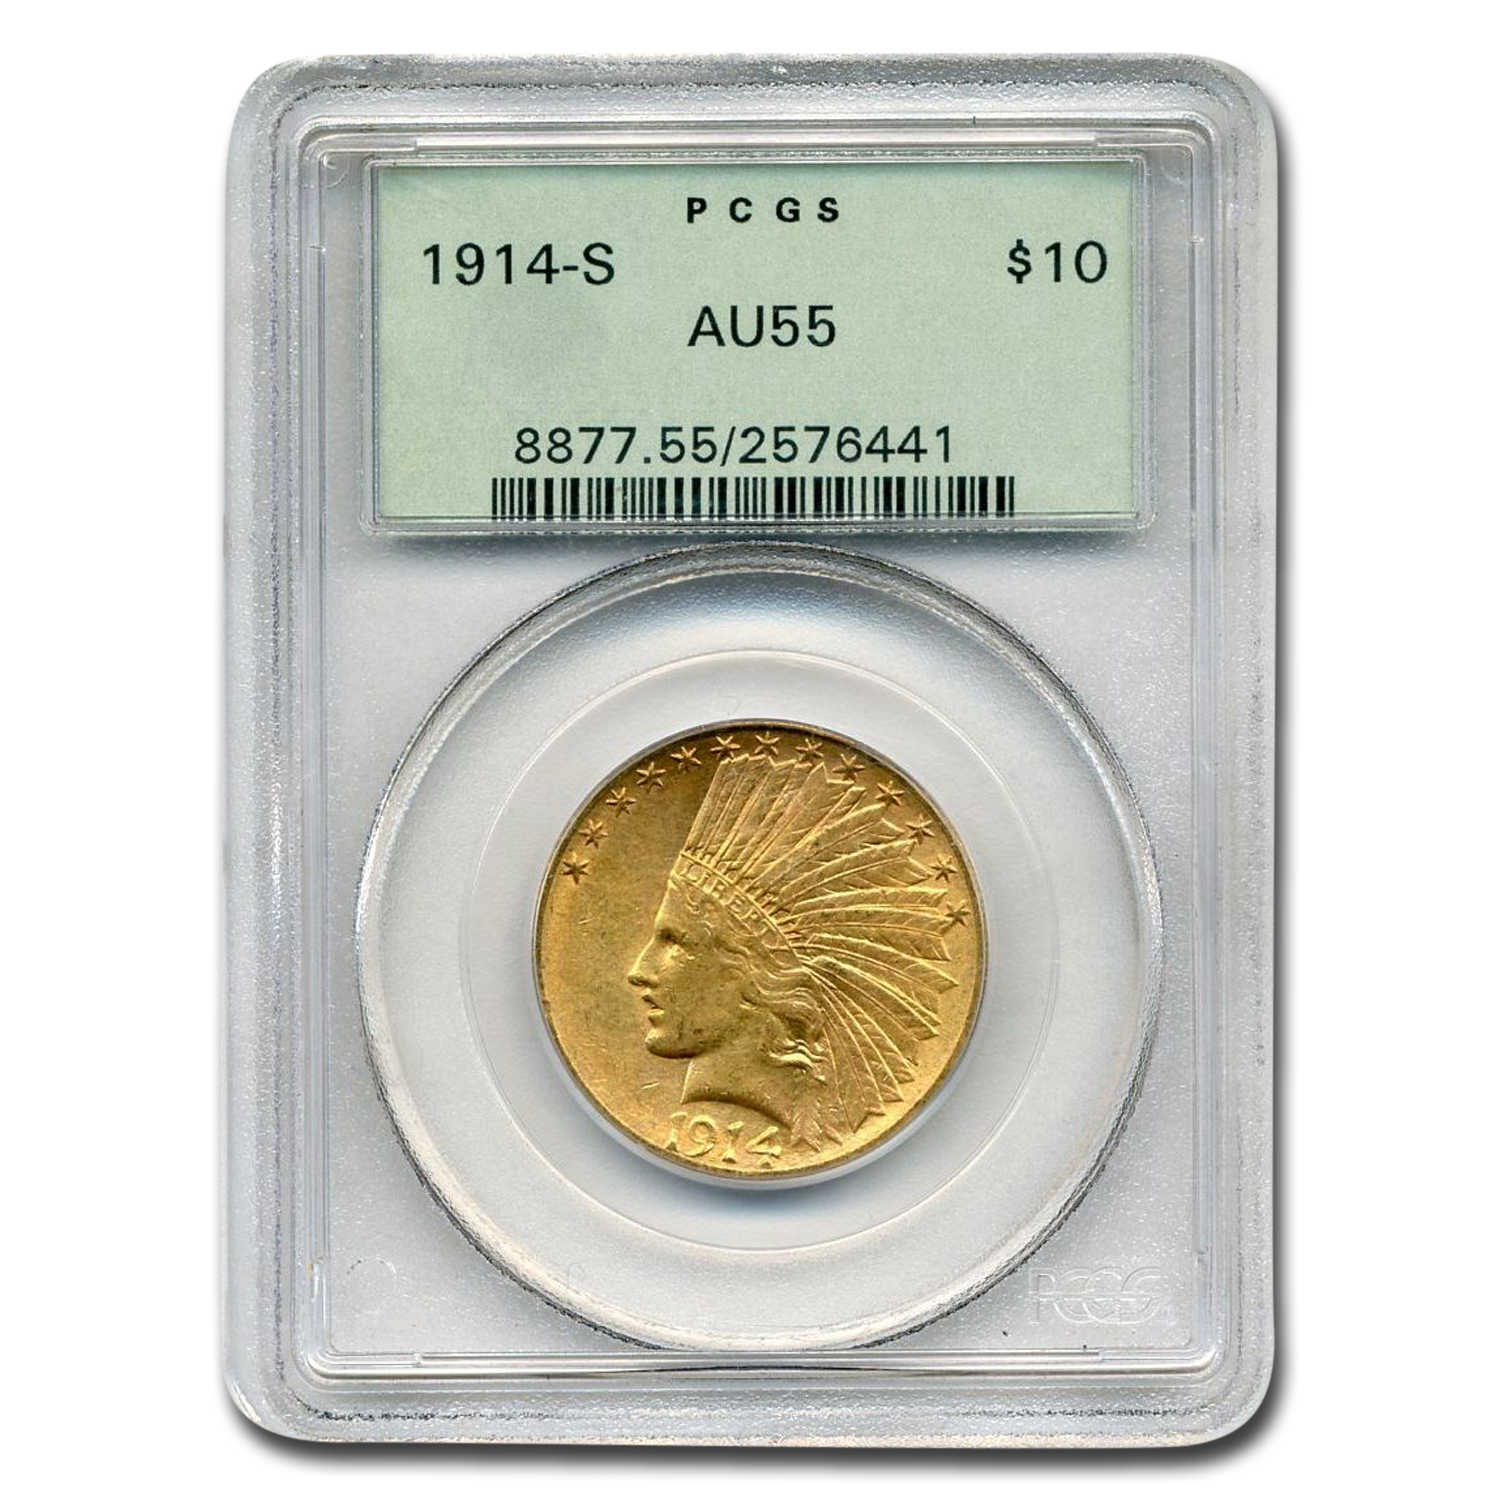 1914-S $10 Indian Gold Eagle AU-55 PCGS